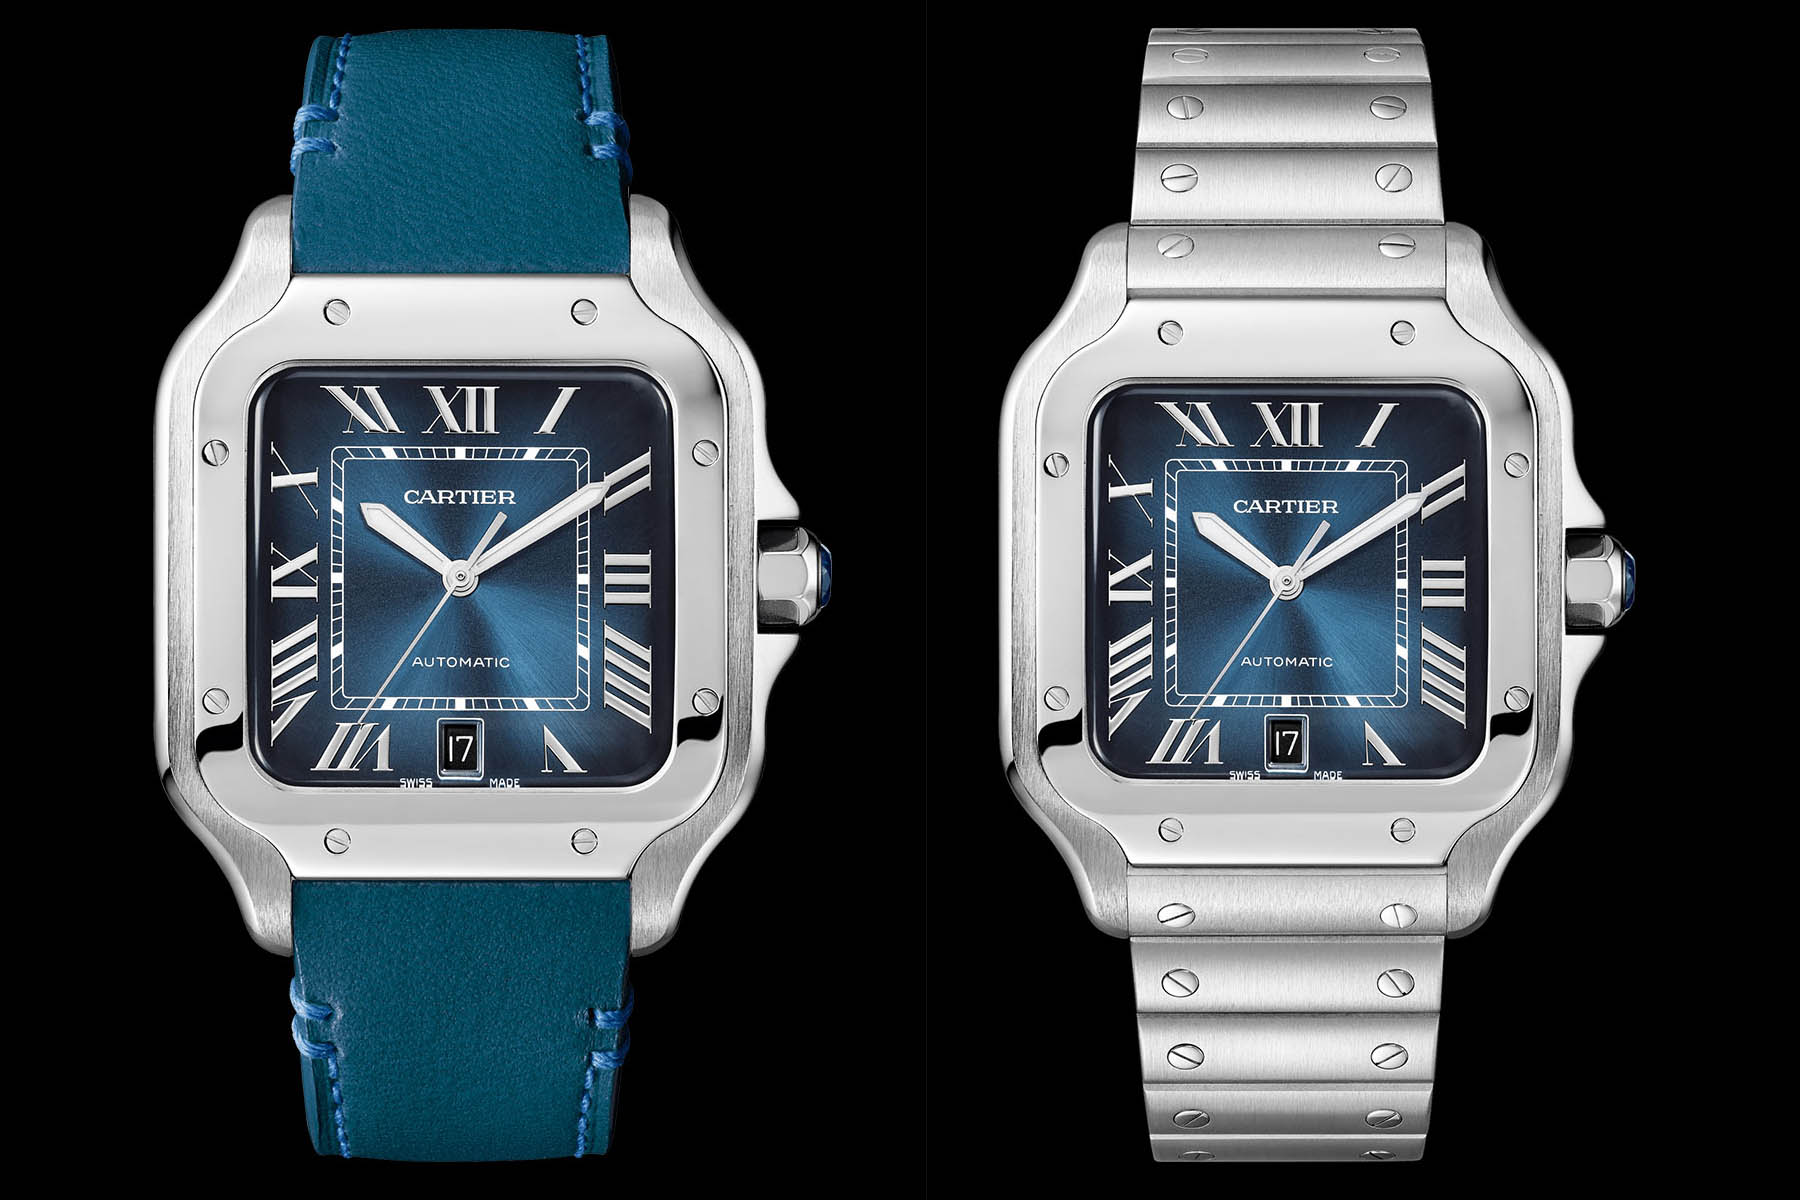 ed3632116621 SIHH 2019 Santos de Cartier Large Model now with Gradient Blue Dial.  Cartier s vision of the luxury sports watch now in a cool gradient blue  edition.